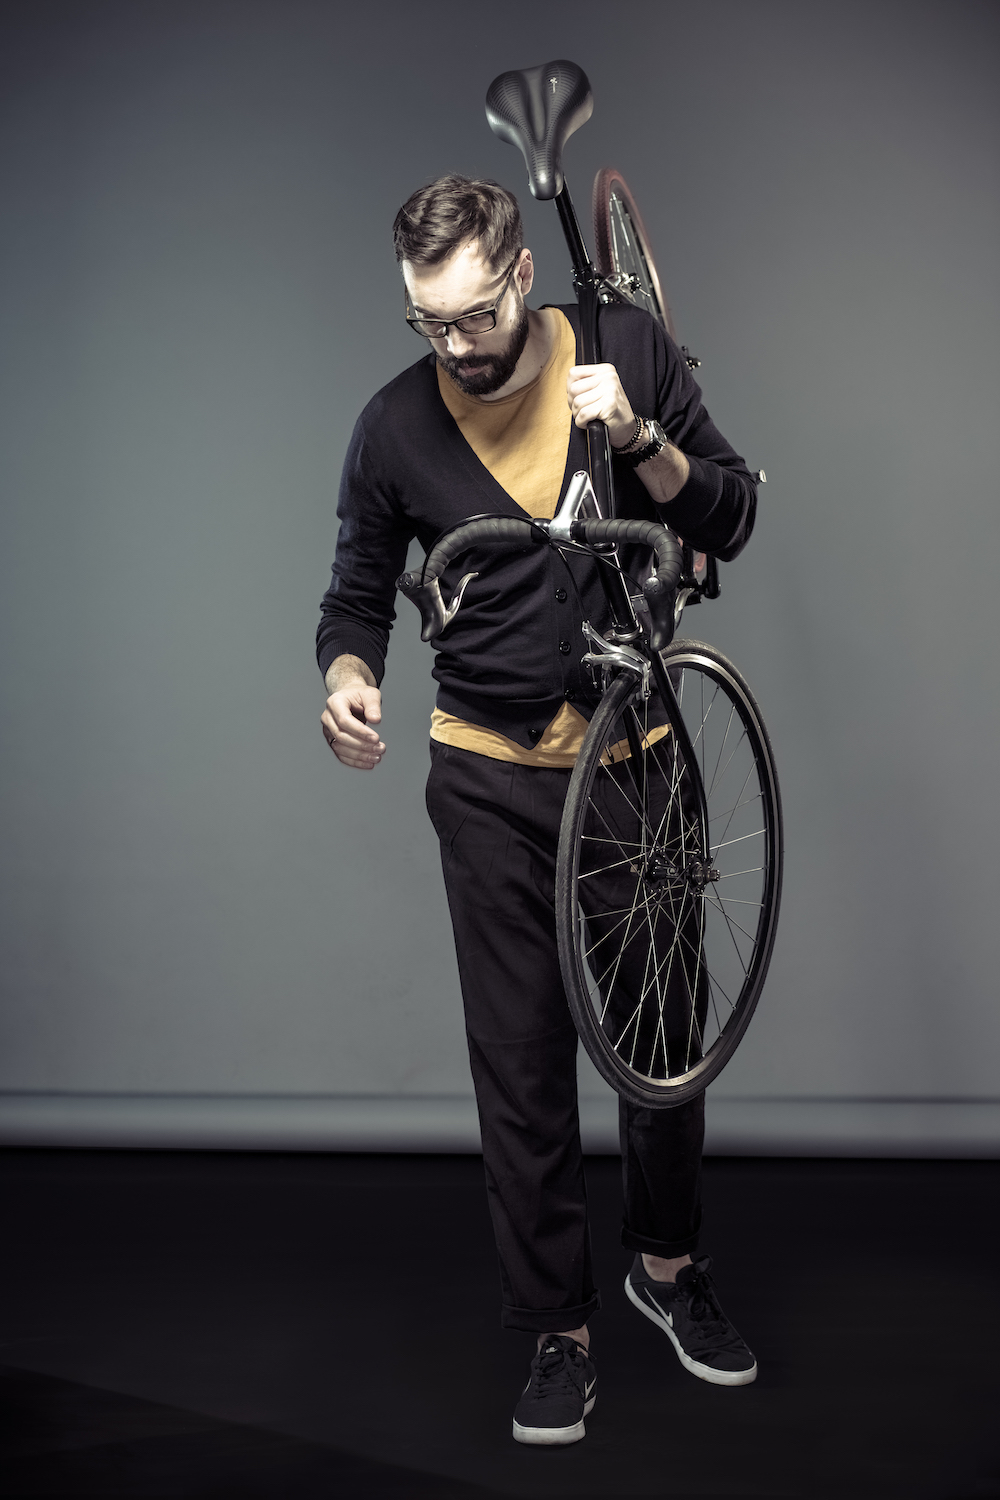 man wearing stylish cardigan and carrying a city bike